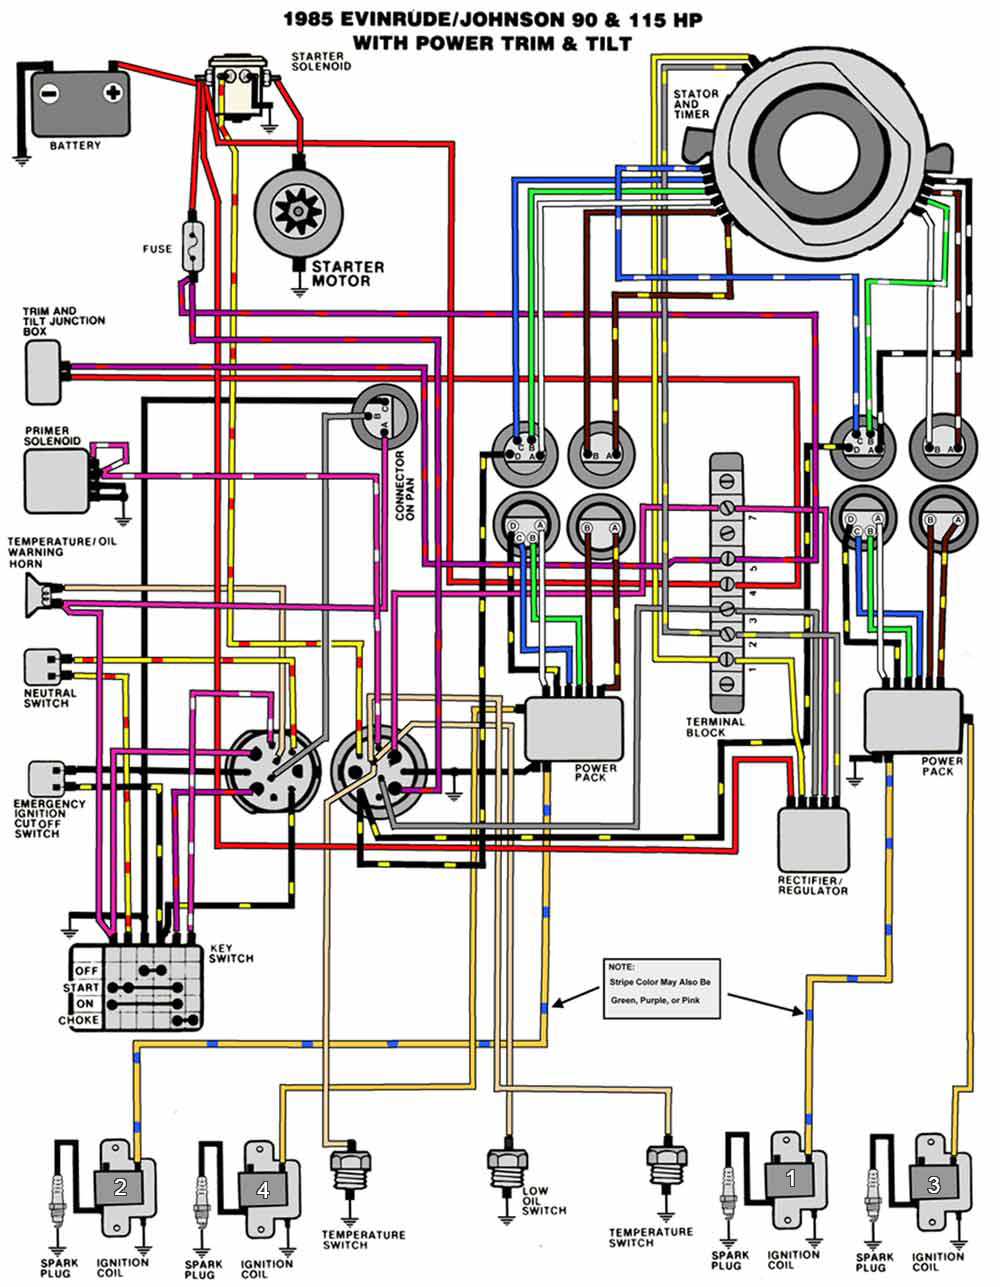 1985_90_115TnT mastertech marine evinrude johnson outboard wiring diagrams 70 HP Evinrude Schematic at cos-gaming.co